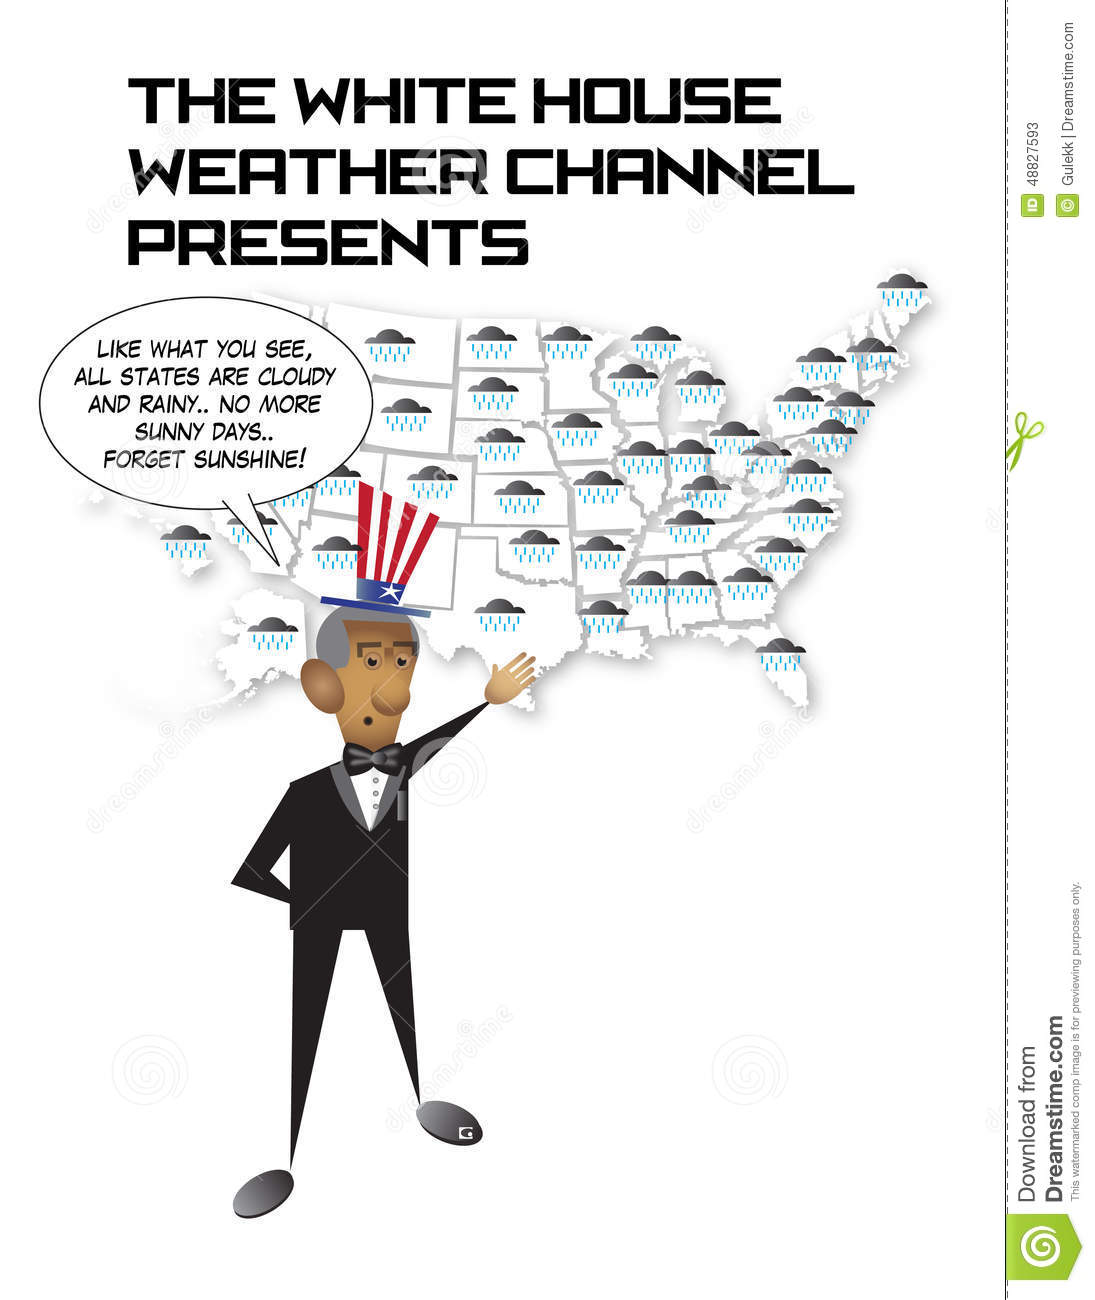 How the weather affects marketing